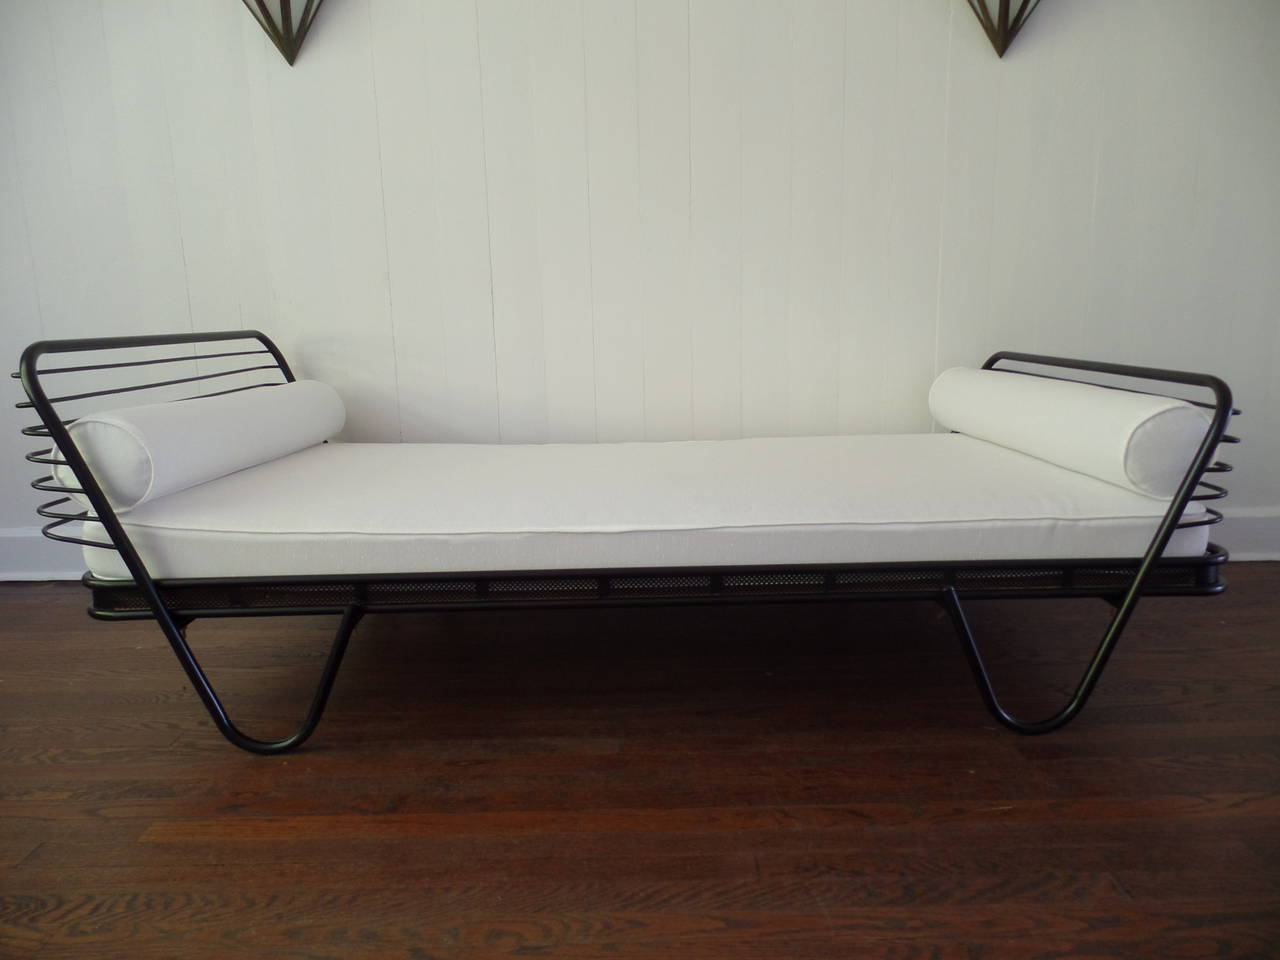 An elegant French Mid-Century Modern day bed, single bed or chaise lounge known as 'Kyoto' by Mathieu Matégot. The stunning black enameled iron frame emphasizes transparency with a perforated metal apron holding the mattress and two headboards in a